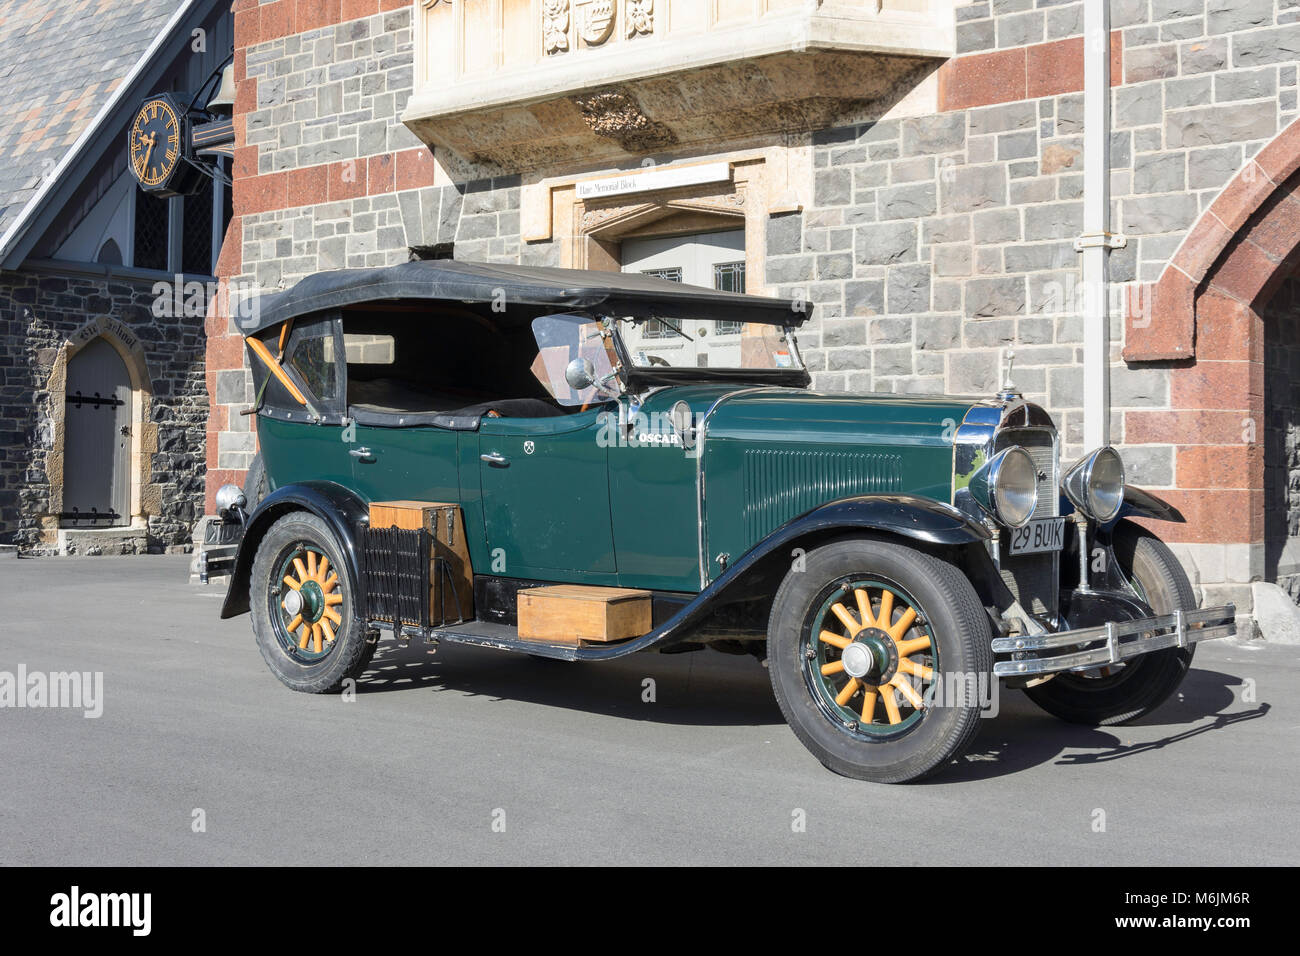 1929 Buick Roadster classic car, Christ's College, Christchurch, Canterbury, New Zealand - Stock Image